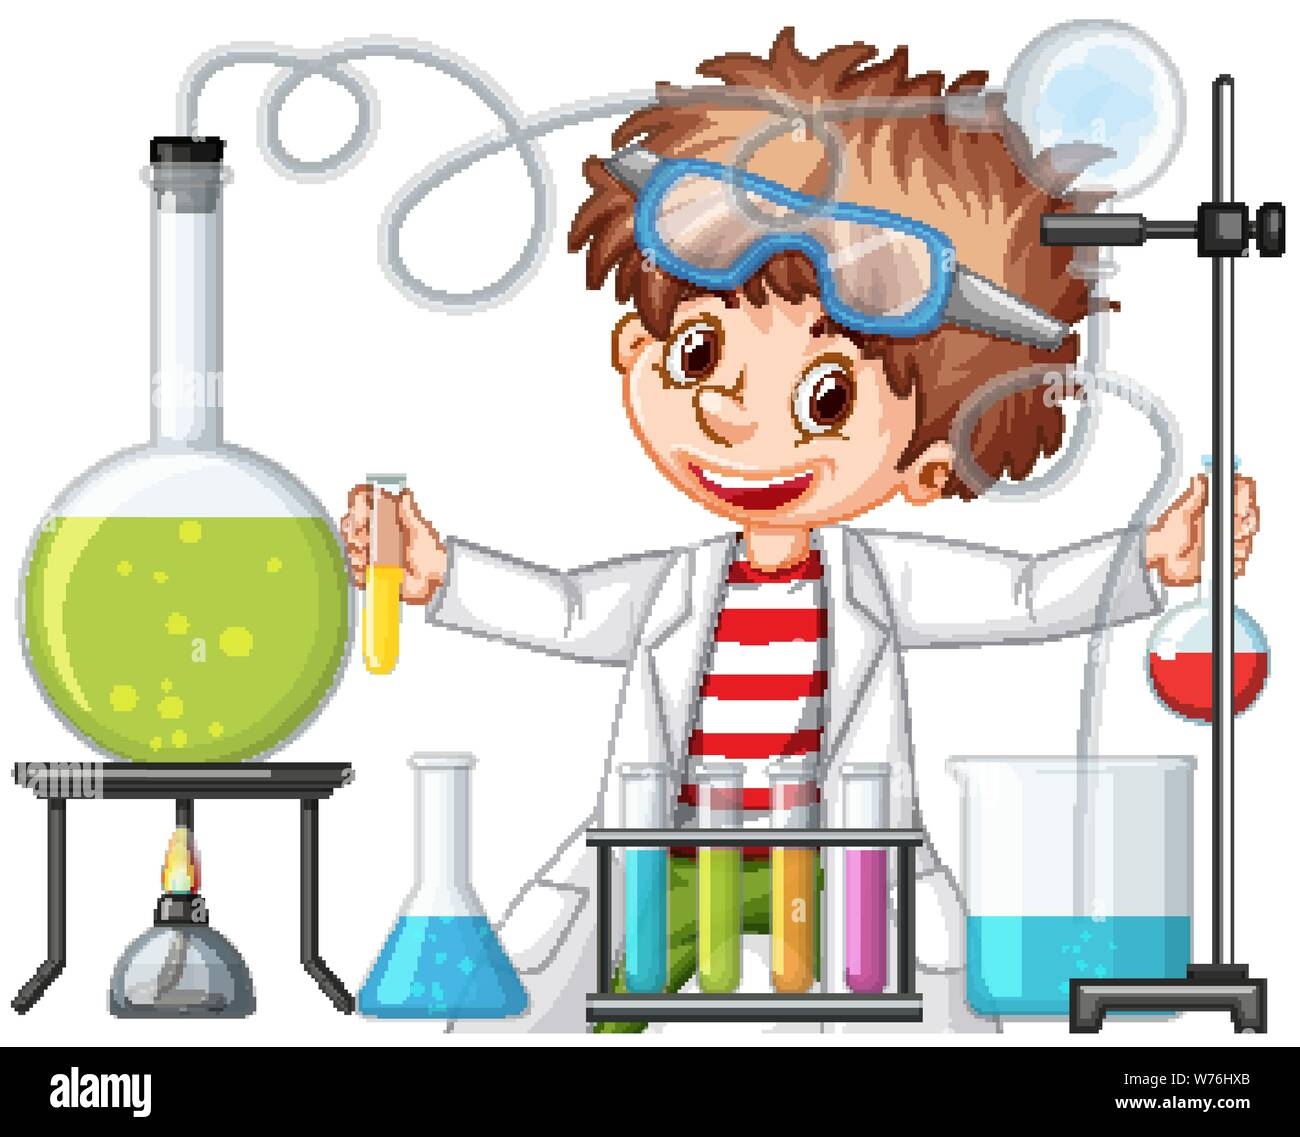 Scientist Working With Science Tools In Lab Illustration